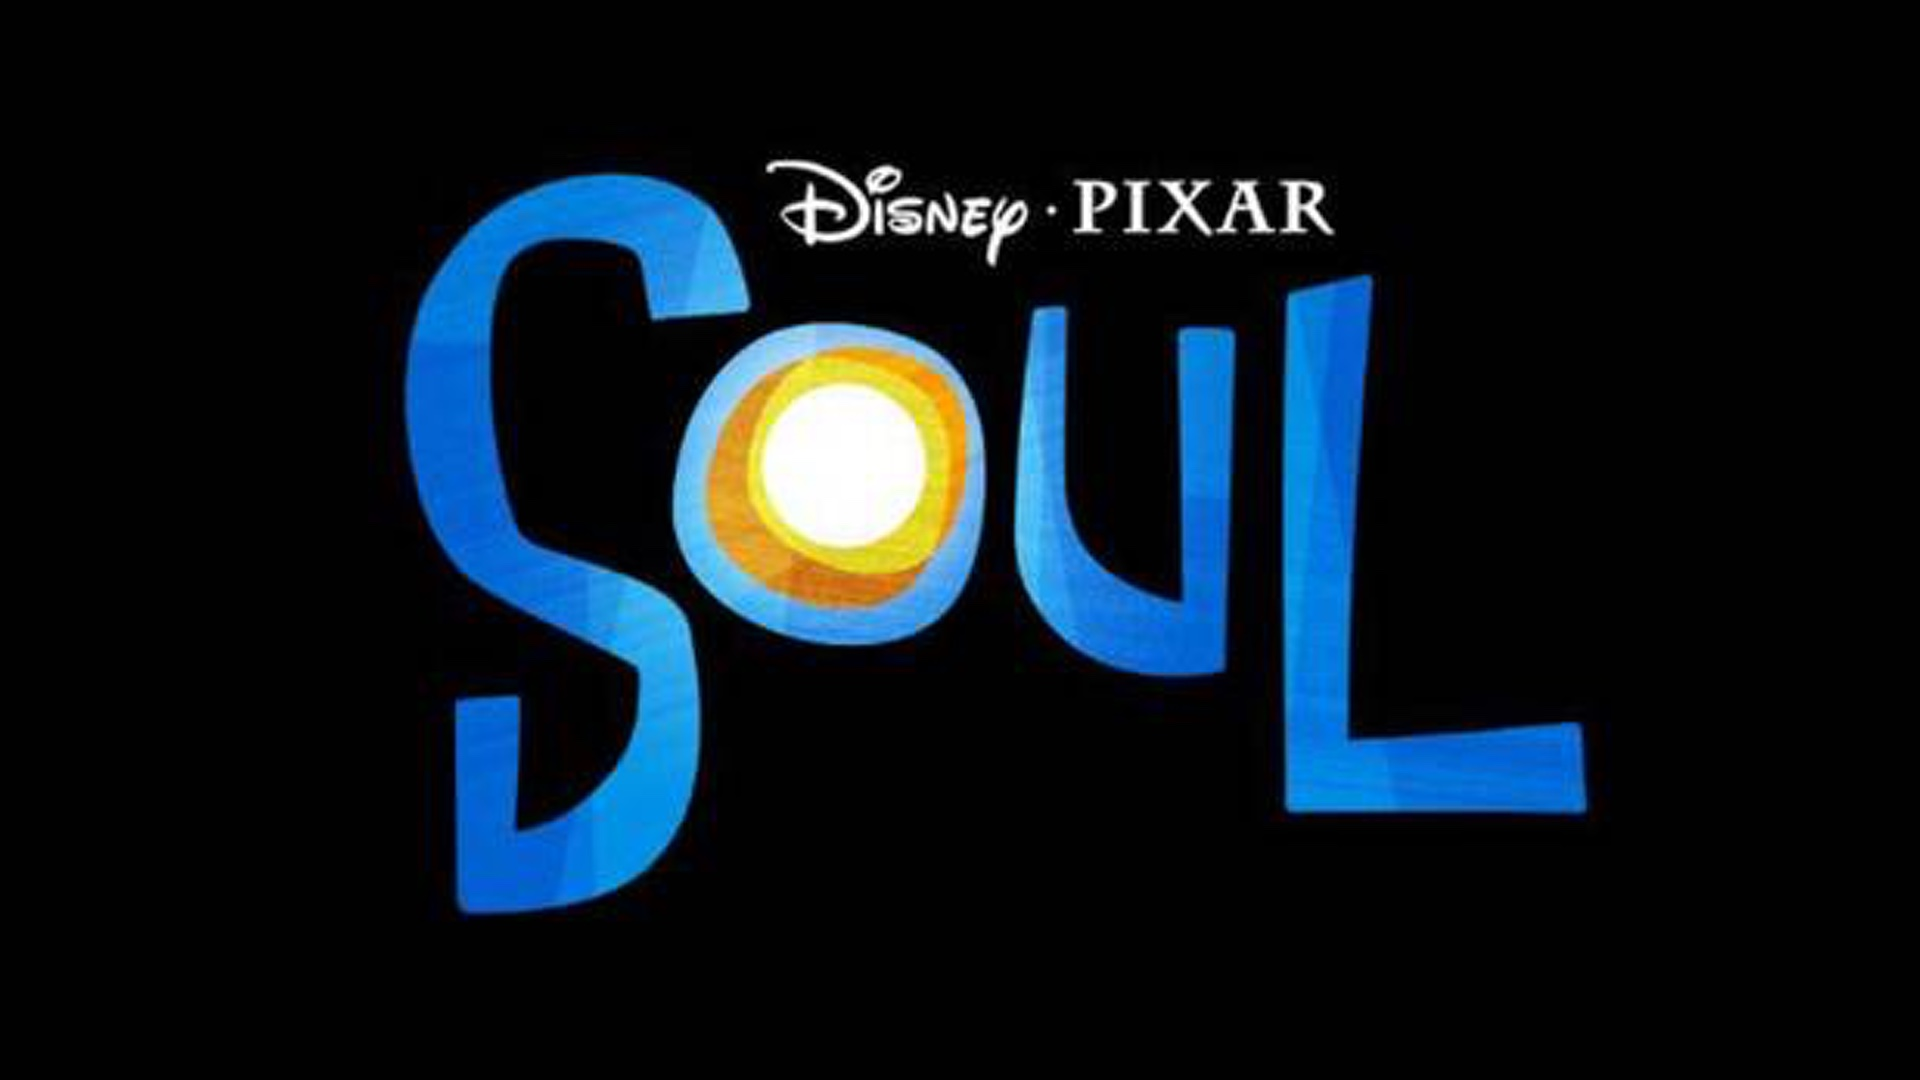 pixars-new-film-soul-is-coming-in-2020-and-there-are-story-details-social.jpg